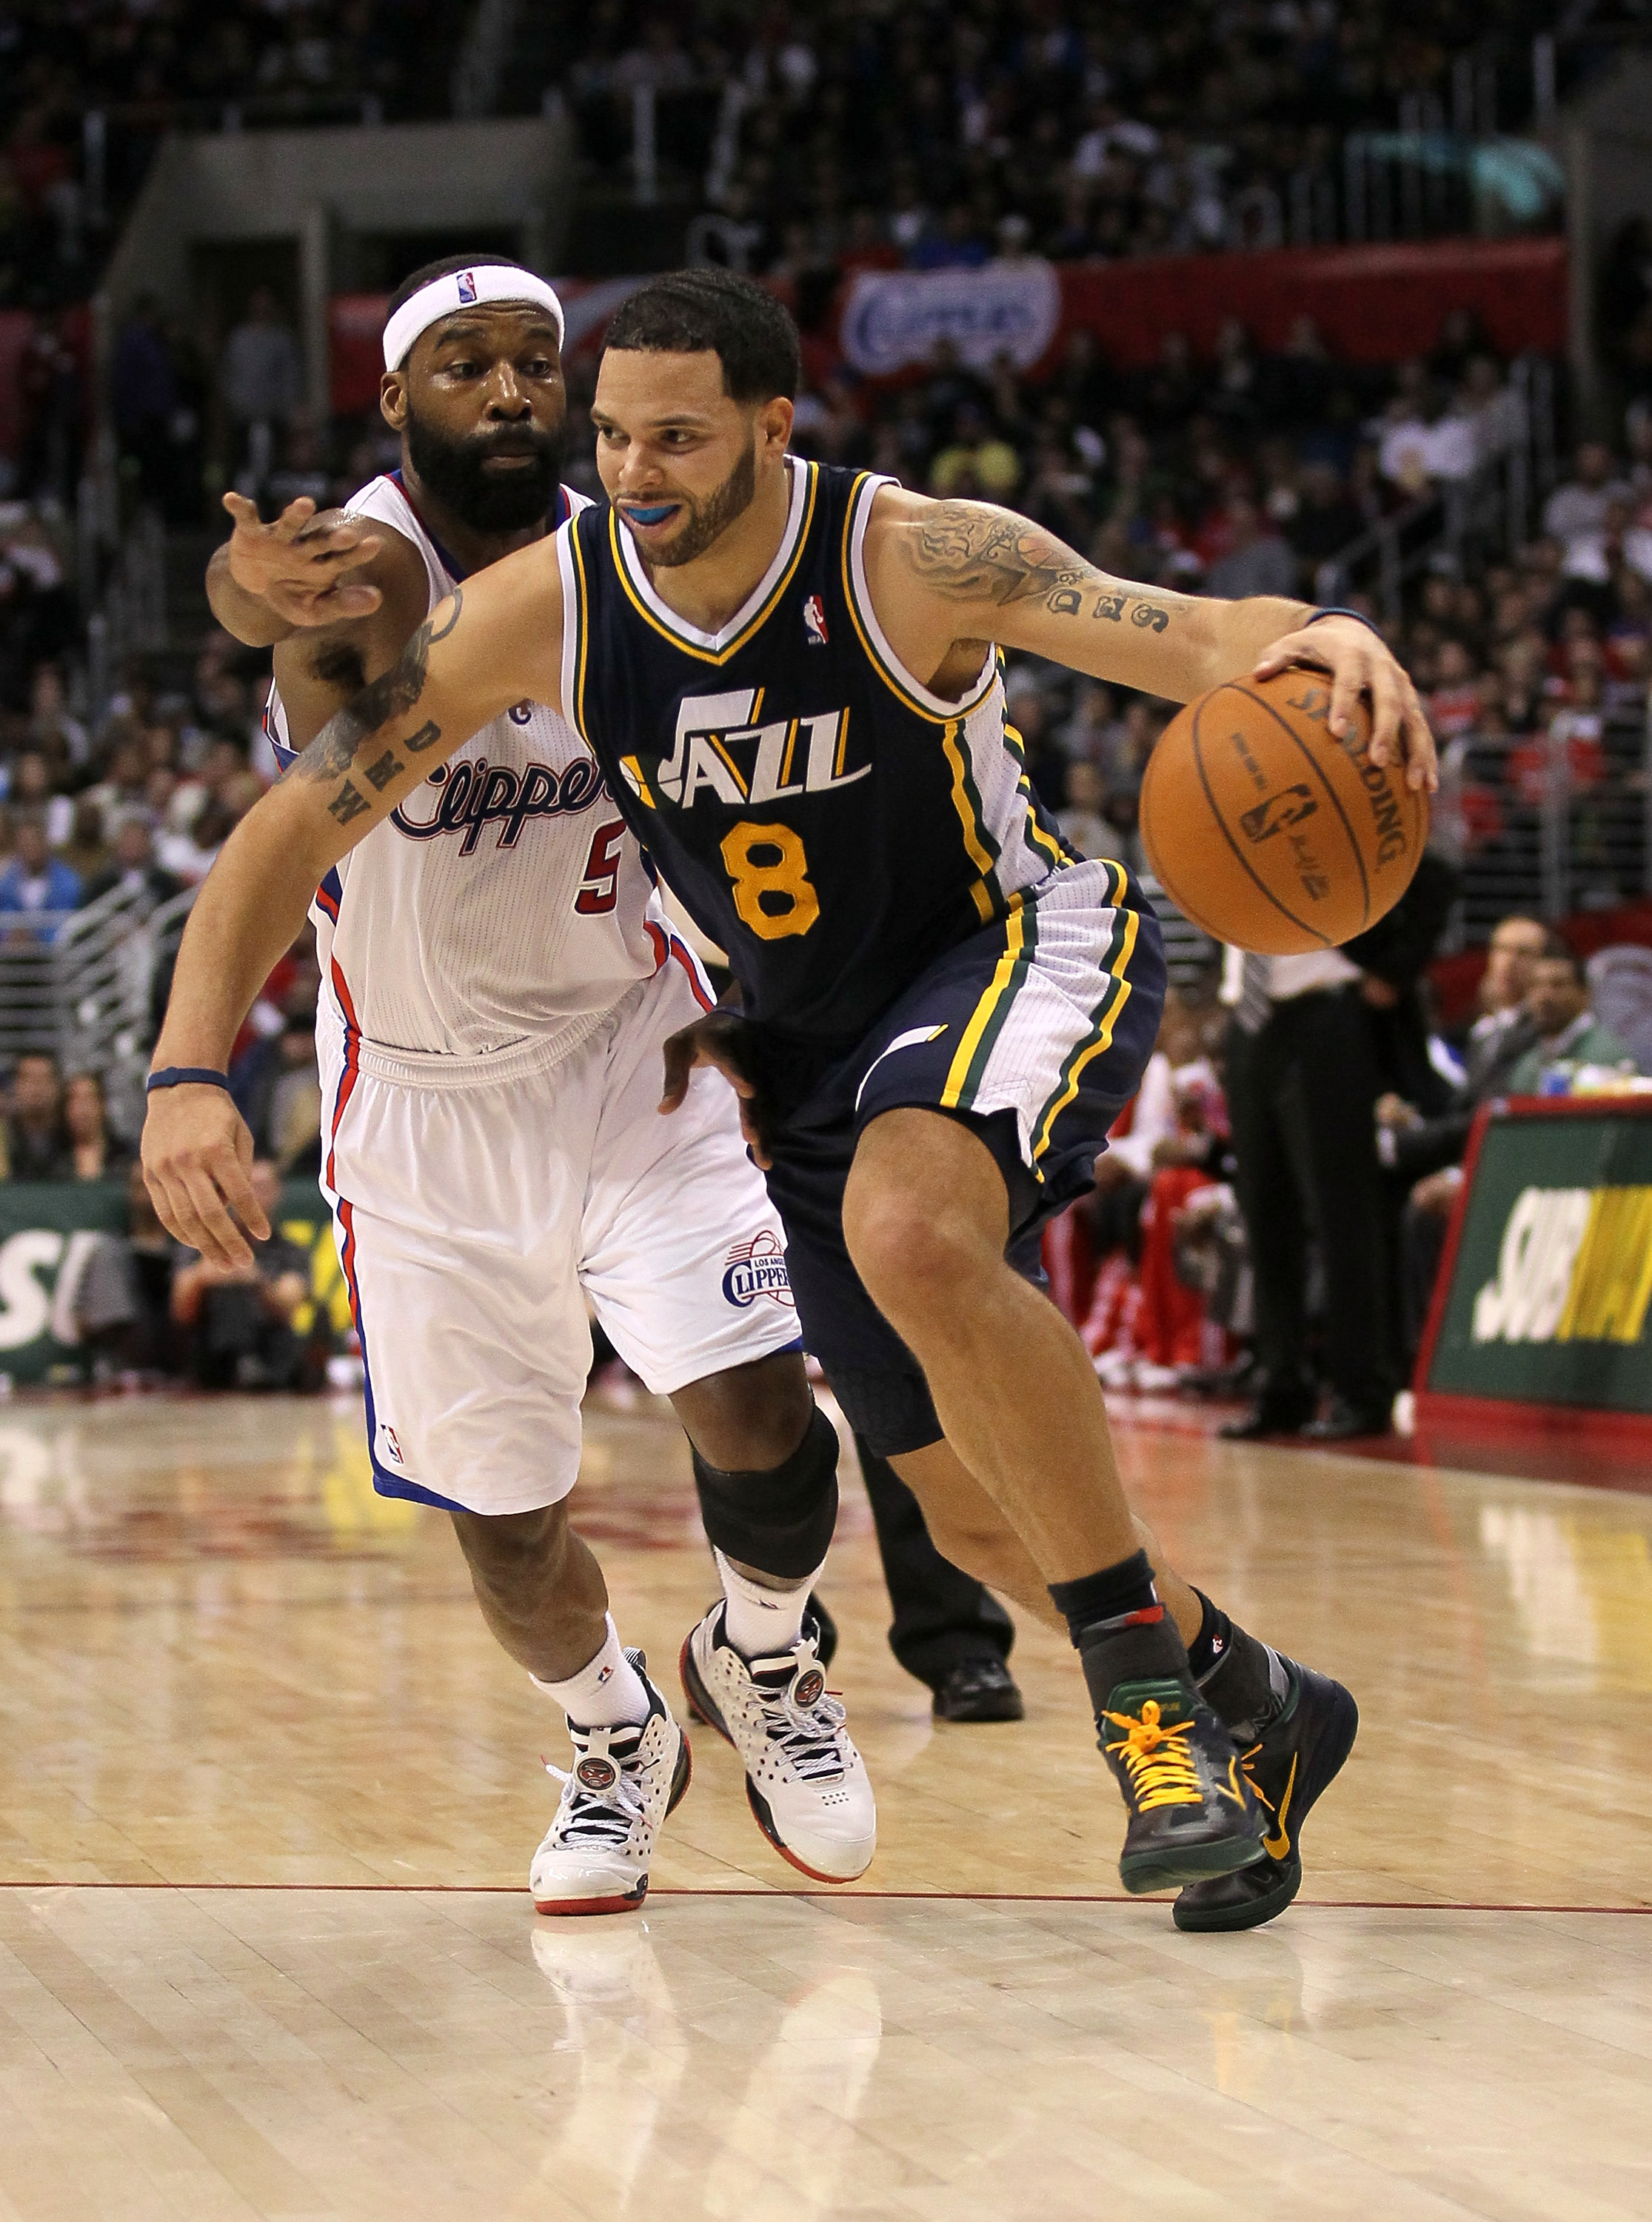 LOS ANGELES, CA - DECEMBER 29:  Deron Williams #8 of the Utah Jazz drives past Baron Davis #5 of the Los Angeles Clippers at Staples Center on December 29, 2010 in Los Angeles, California.   The Jazz won 103-85.  NOTE TO USER: User expressly acknowledges